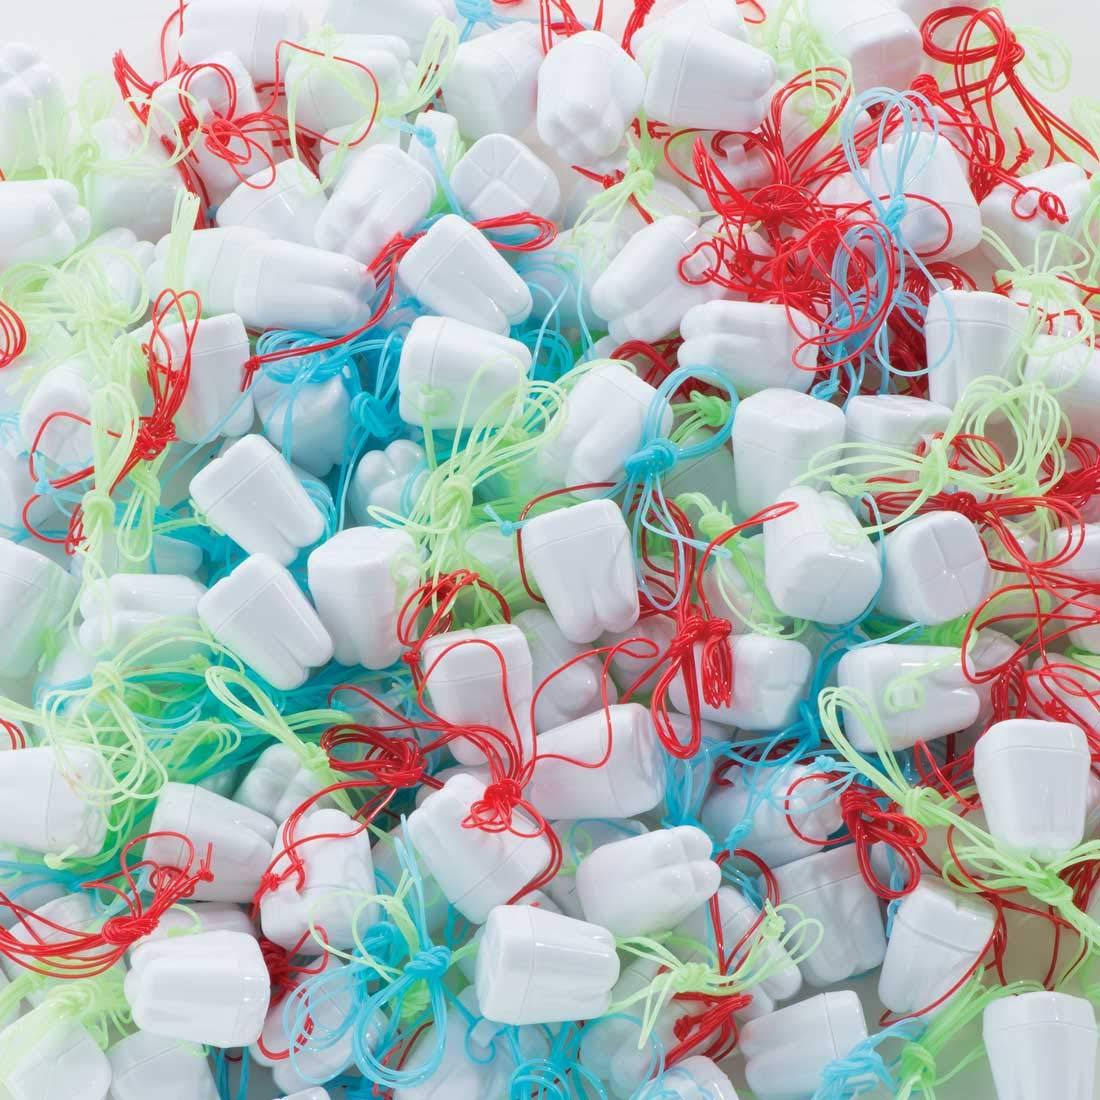 SmileMakers Bulk Tooth Necklaces - Prizes 720 per Pack by SmileMakers